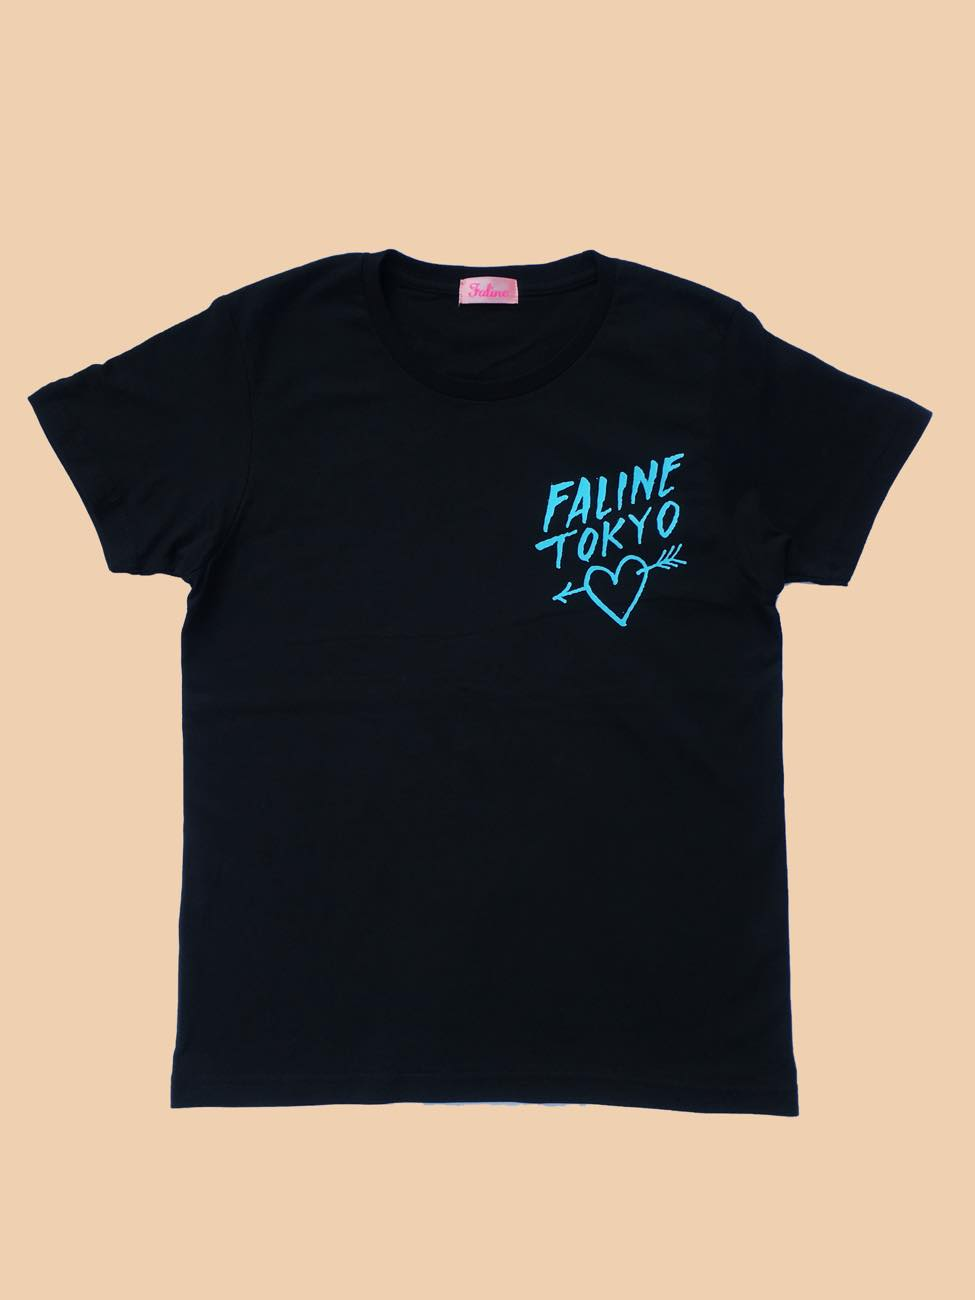 Faline x Andre Tee (Black /Blue)